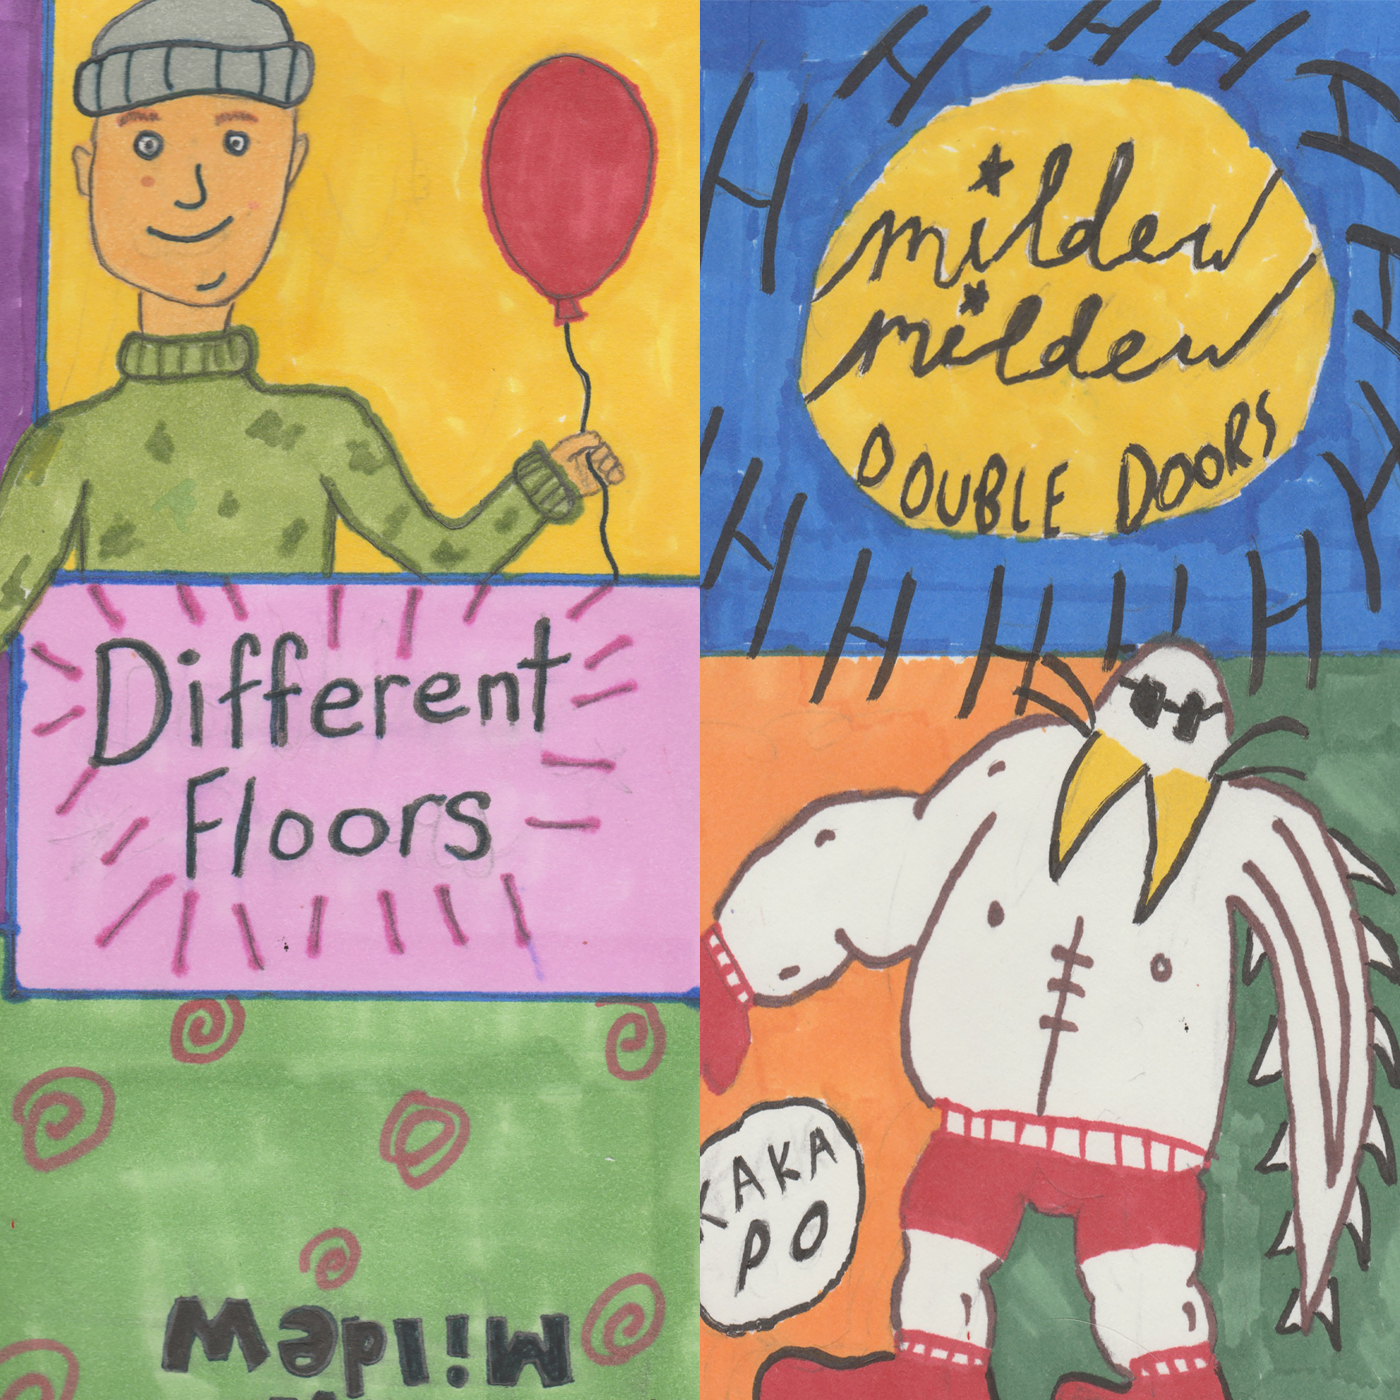 Mildew Mildew- Double Doors / Different Floors (UB 22)